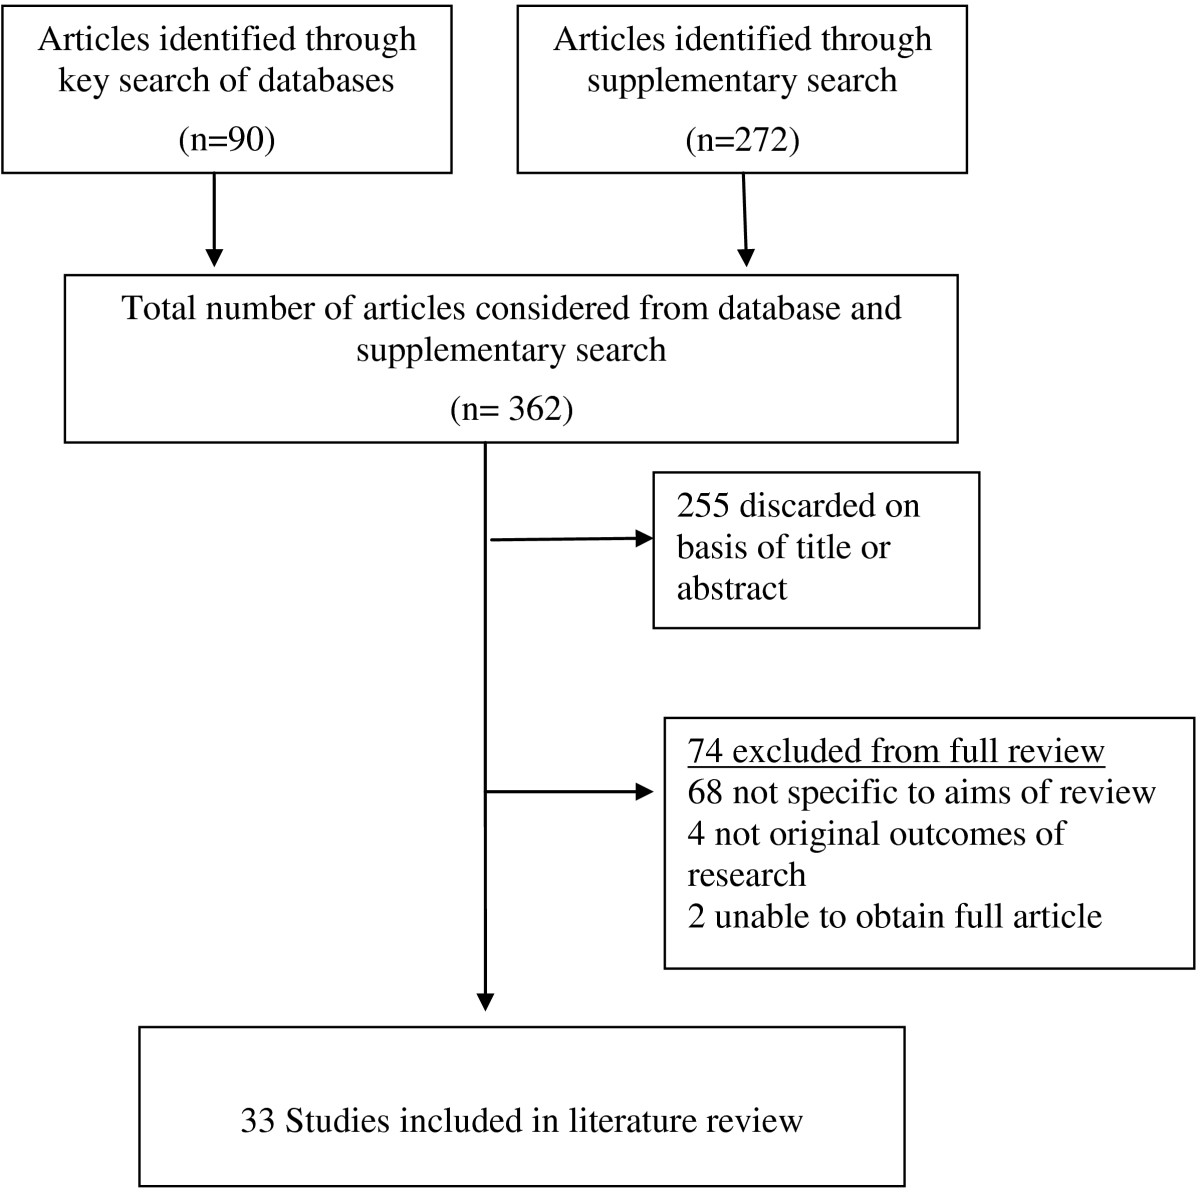 https://static-content.springer.com/image/art%3A10.1186%2F1472-684X-12-4/MediaObjects/12904_2012_Article_145_Fig1_HTML.jpg